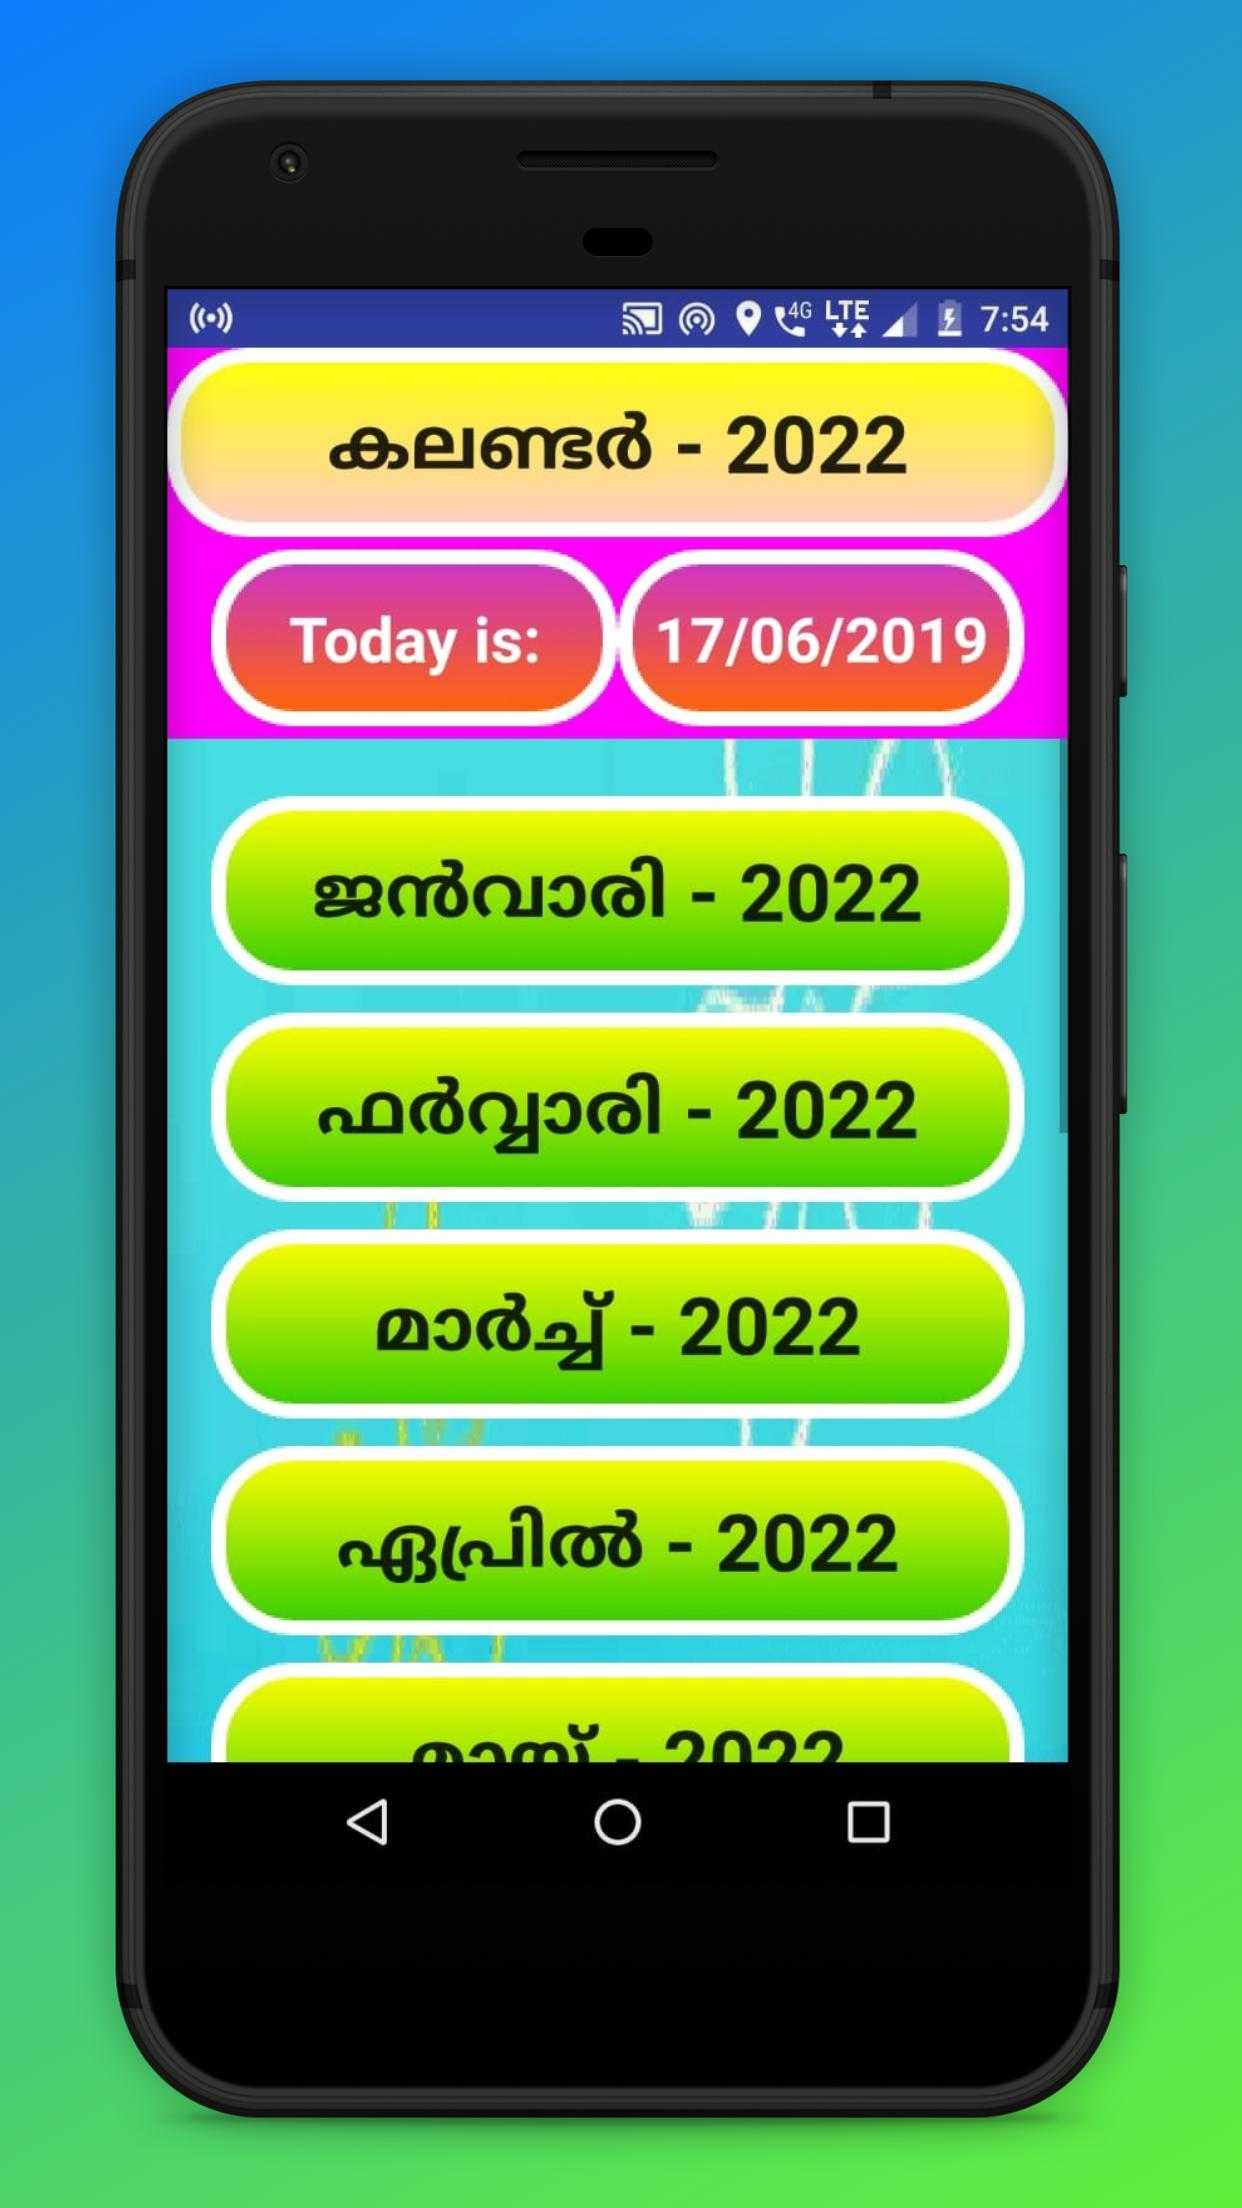 Malayalam Calendar 2022.Malayalam Calendar 2022 Malayala Manorama For Android Apk Download